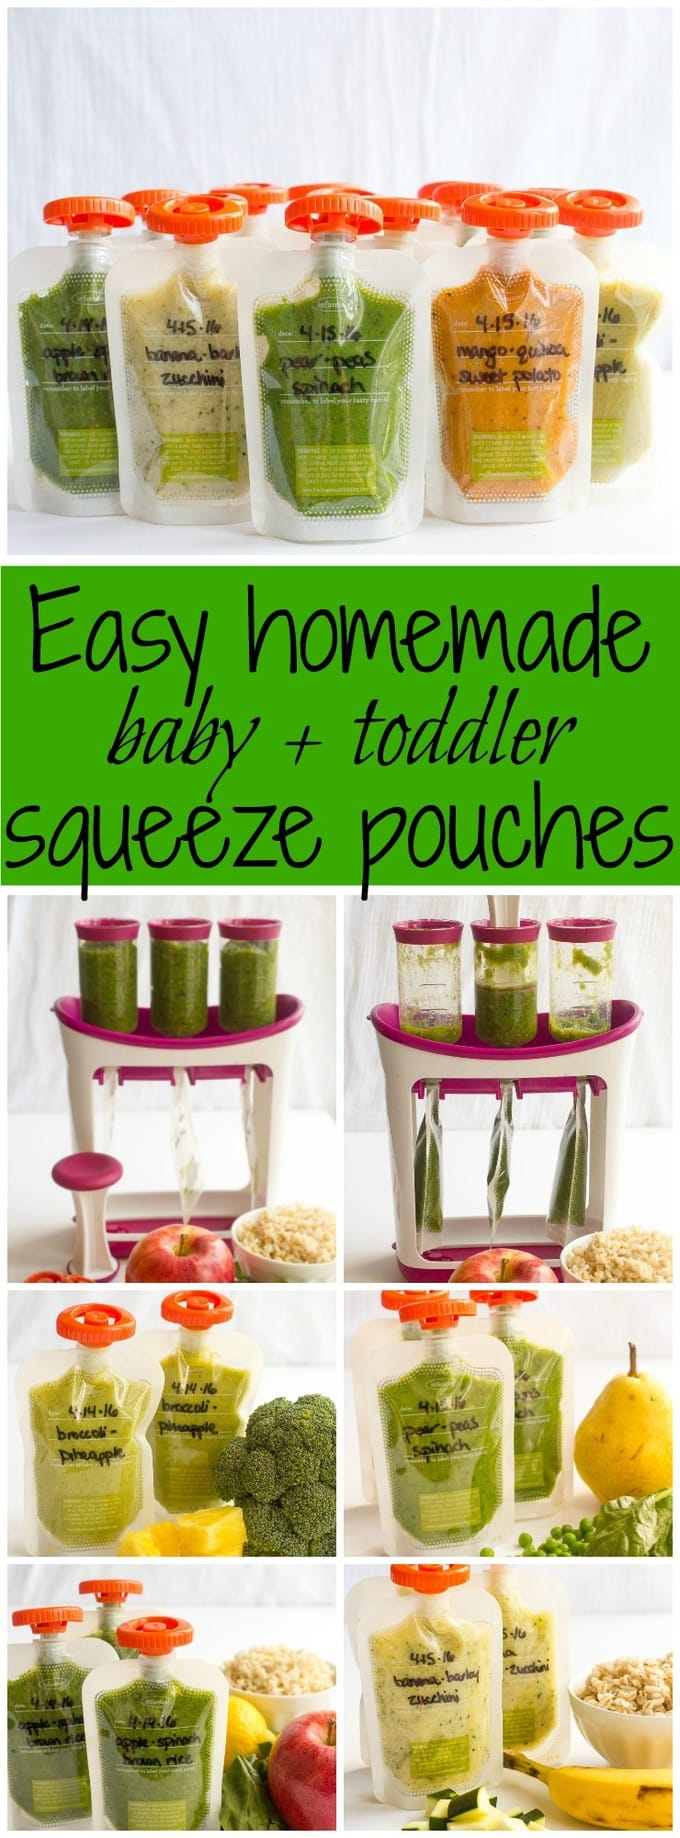 How to make homemade squeeze pouches and 5 easy recipes - great for babies toddlers & Homemade baby food pouches how-to and 5 recipes - Family Food on ...